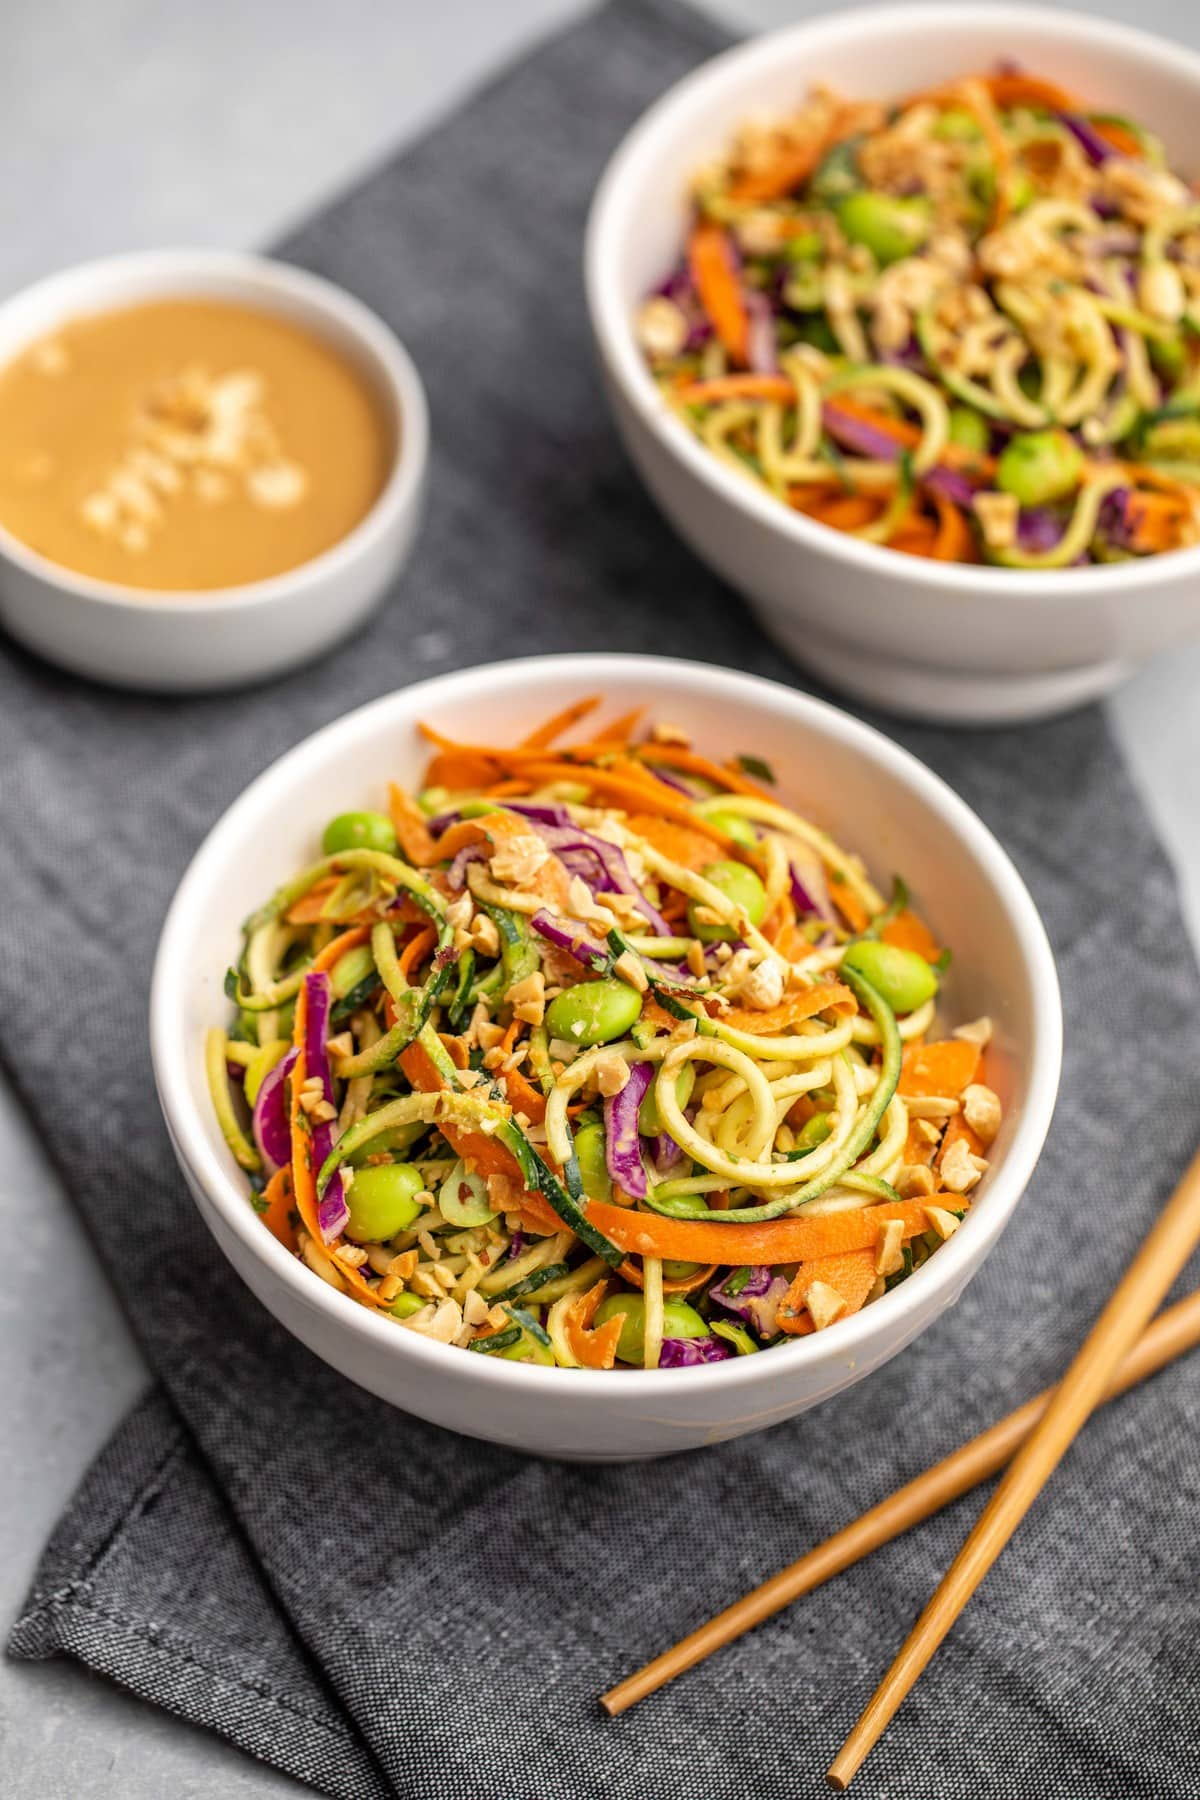 angled shot of two white bowls of zucchini noodle salad with peanut sauce and wooden chopsticks